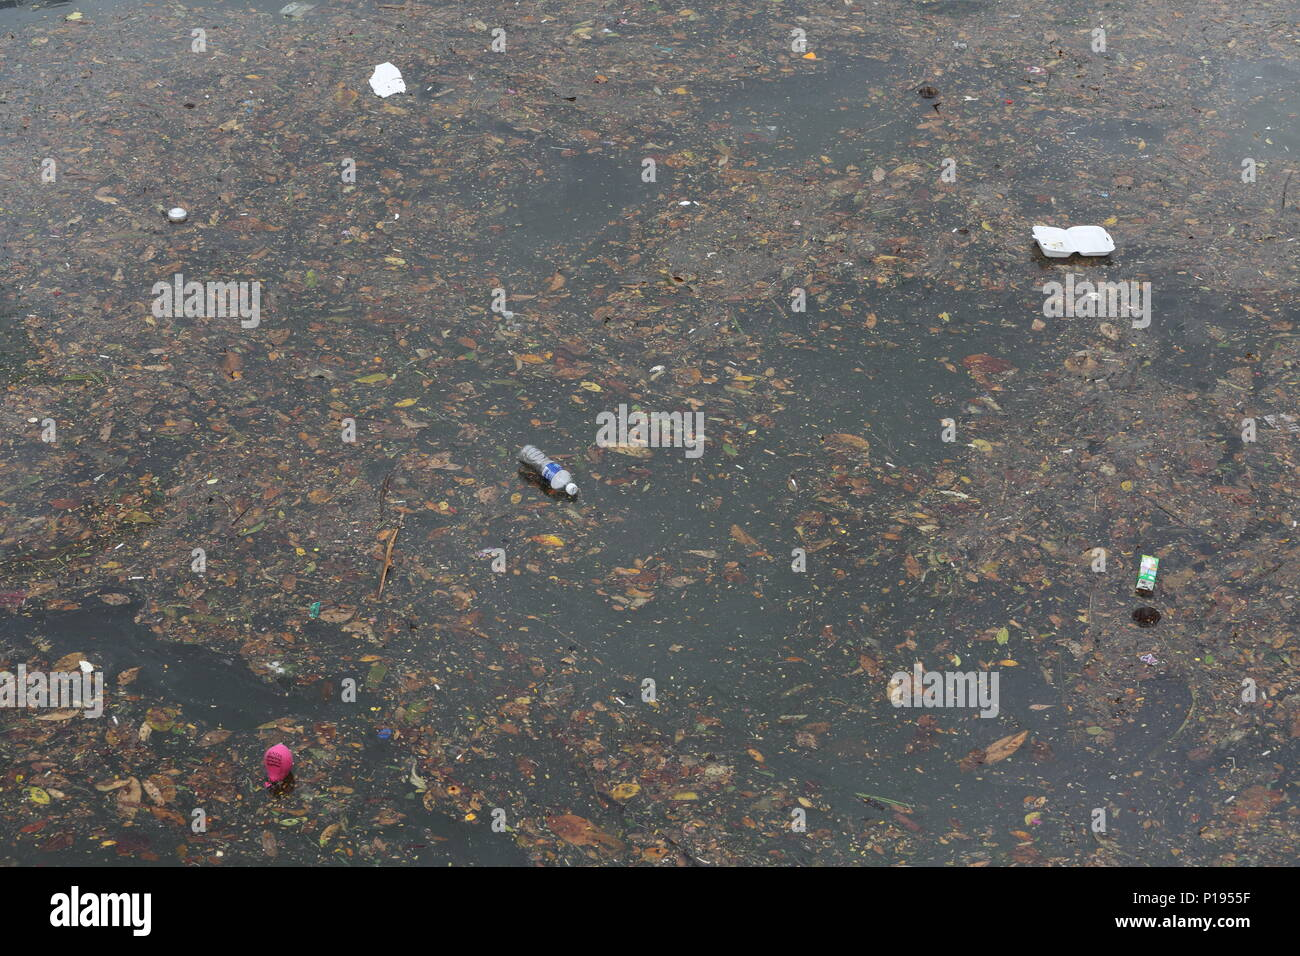 Styrofoam packet, bottle containers and plastic floating on the water causing water pollution on earth. - Stock Image